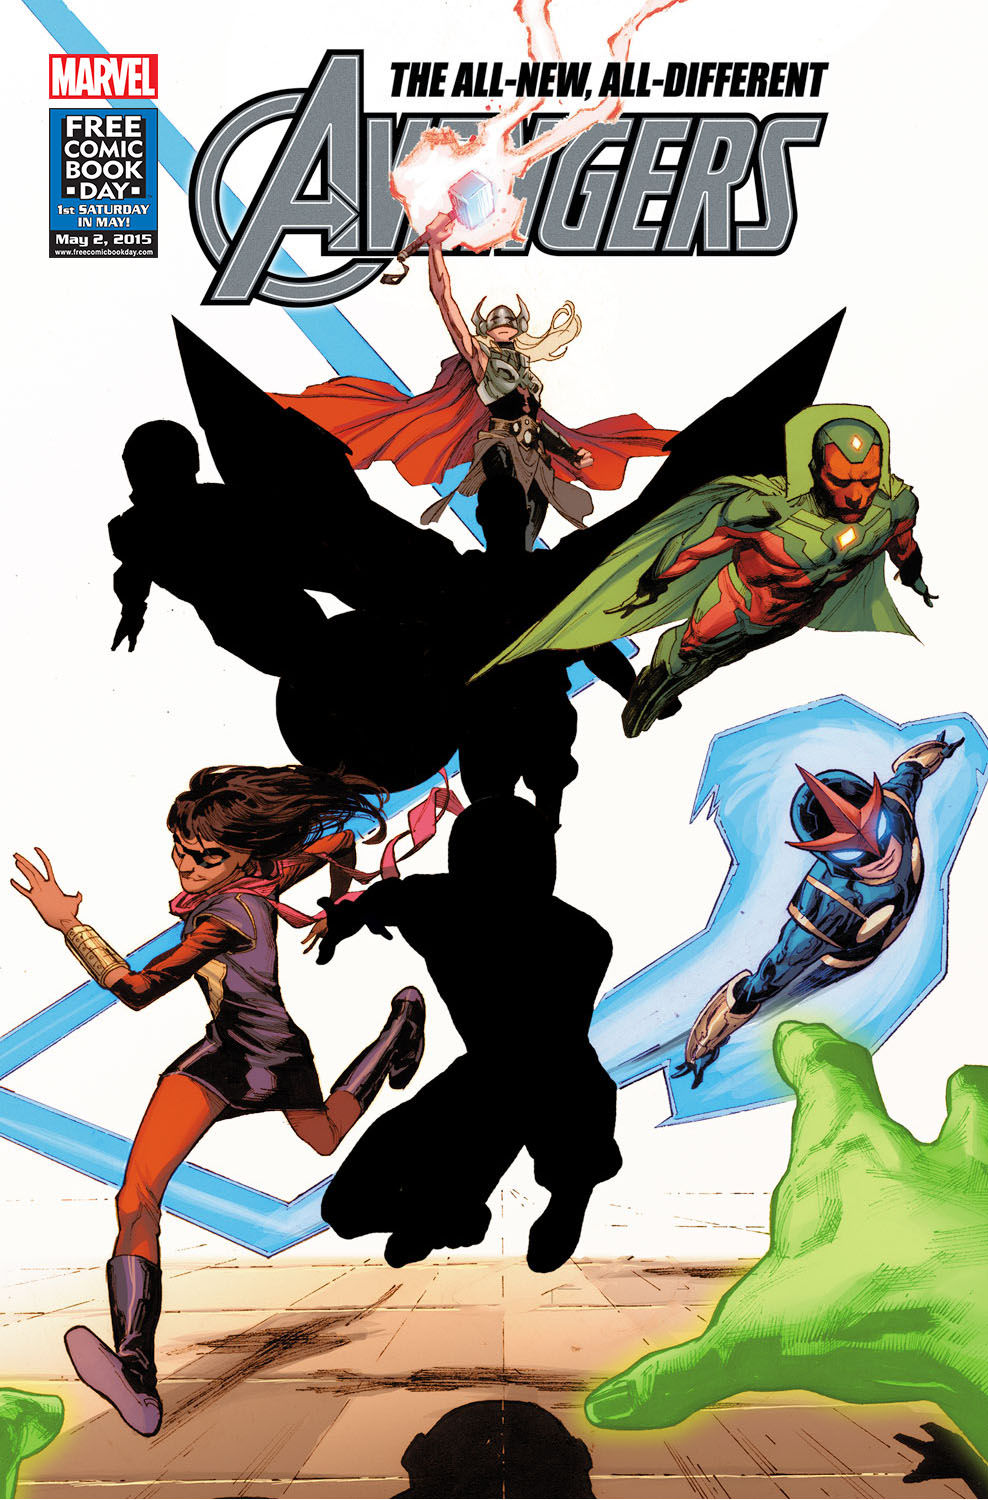 All-New_All-Different_Avengers_Assemble_2 Even more All-New, All-Different Avengers